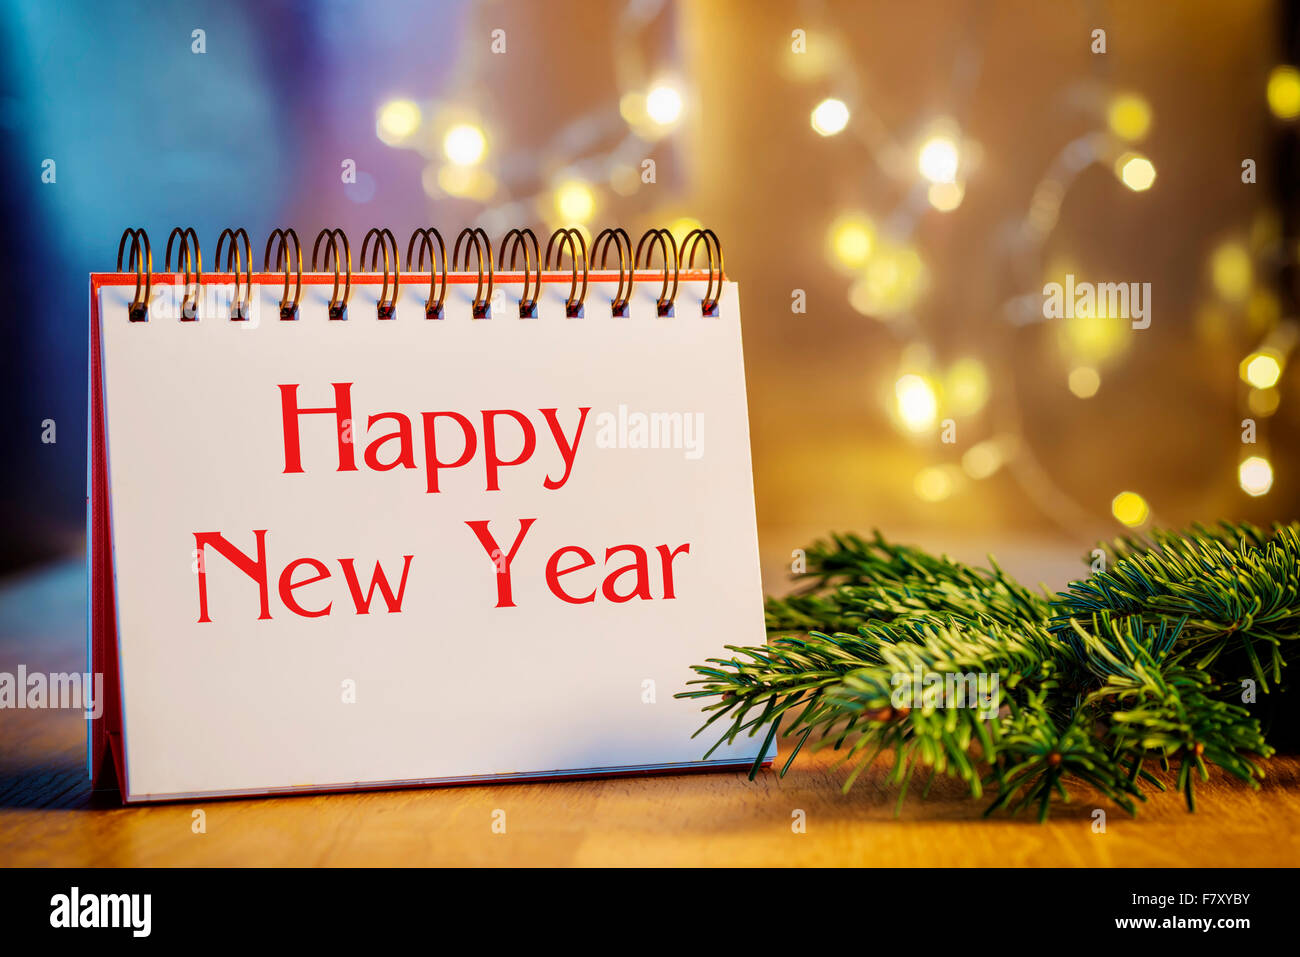 Image of empty ring binder and text Happy New Year, branch and blur lights in background - Stock Image